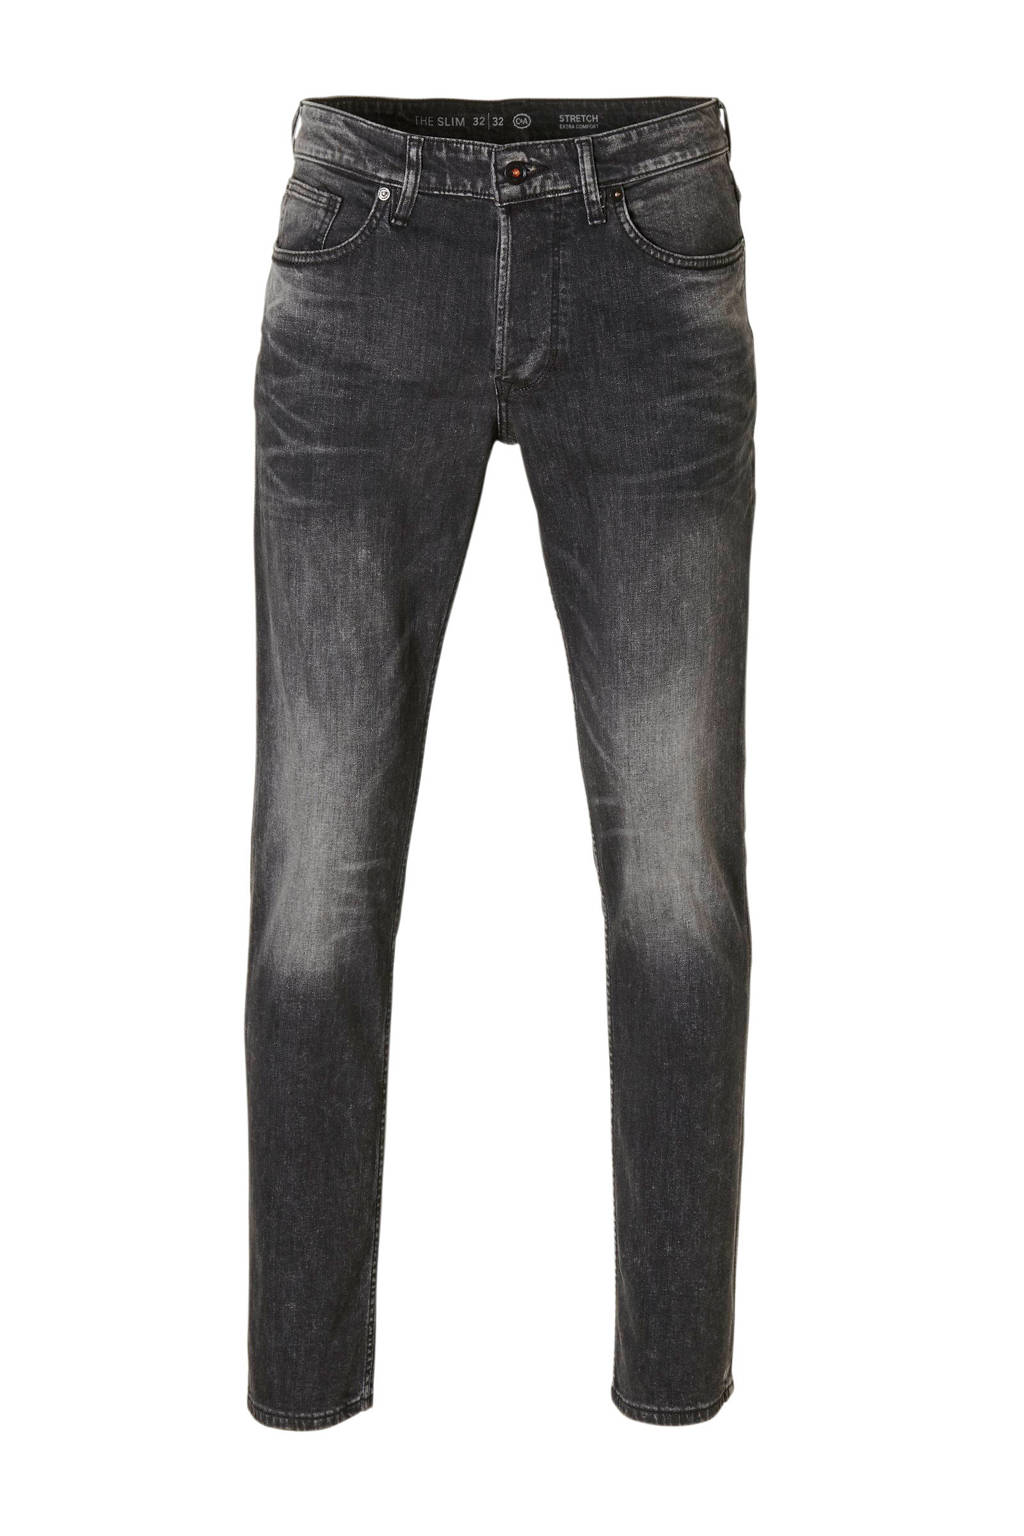 C&A The Denim slim fit jeans, Antraciet